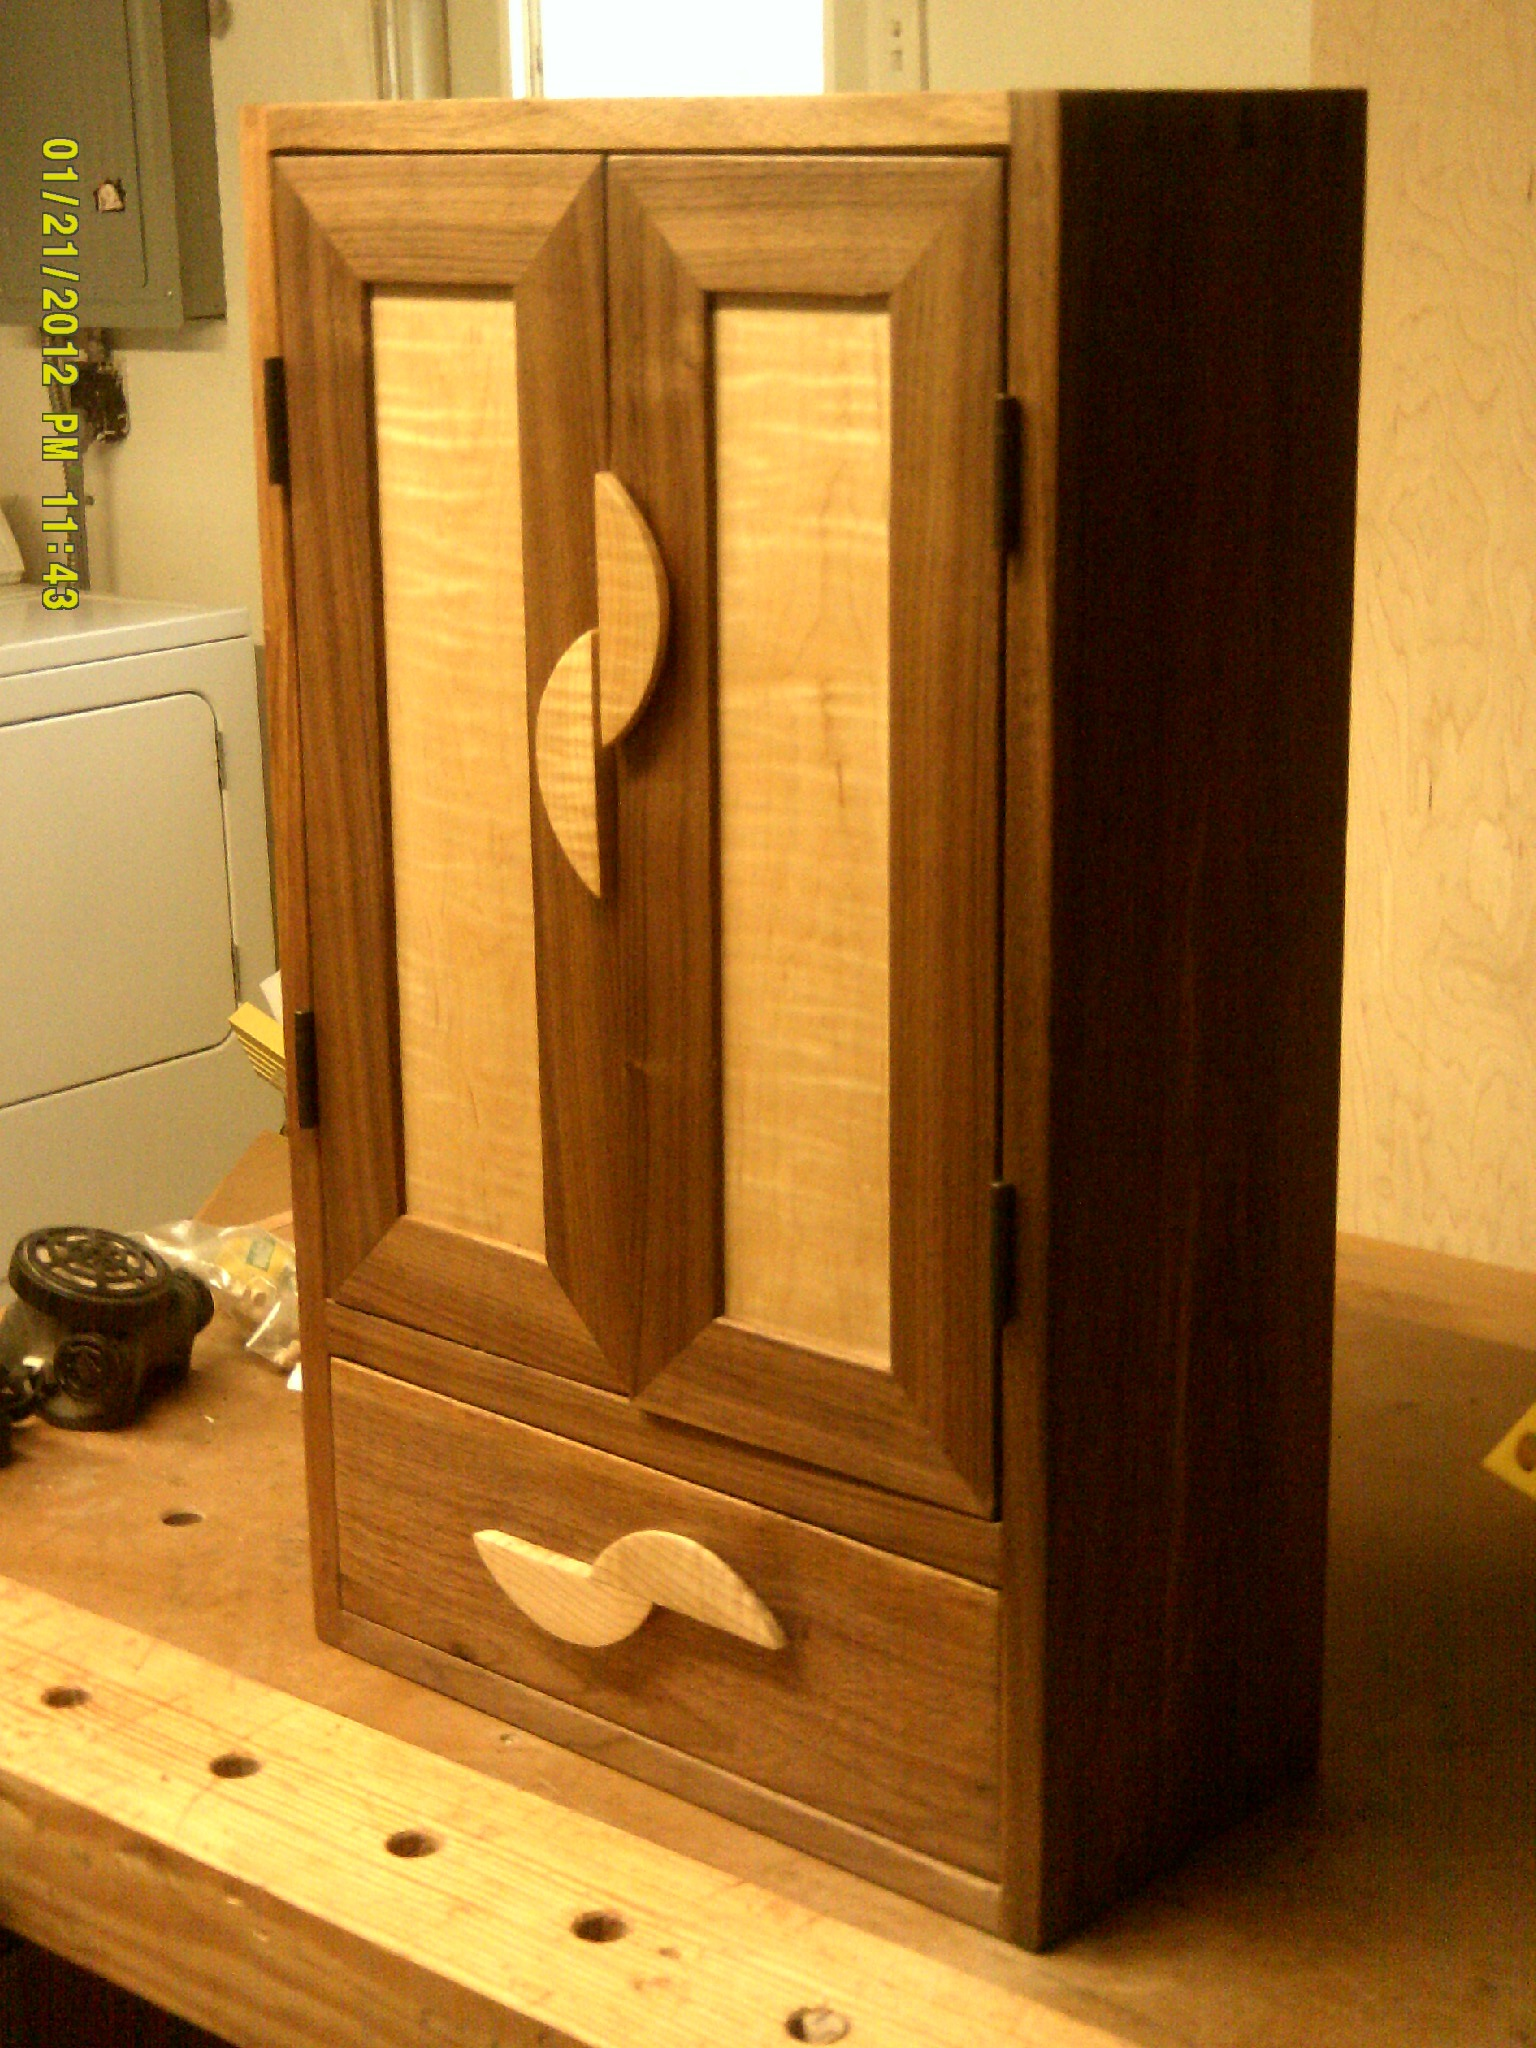 Hanging Wall Cabinet stuff i've built: the hanging wall cabinet | tom's workbench